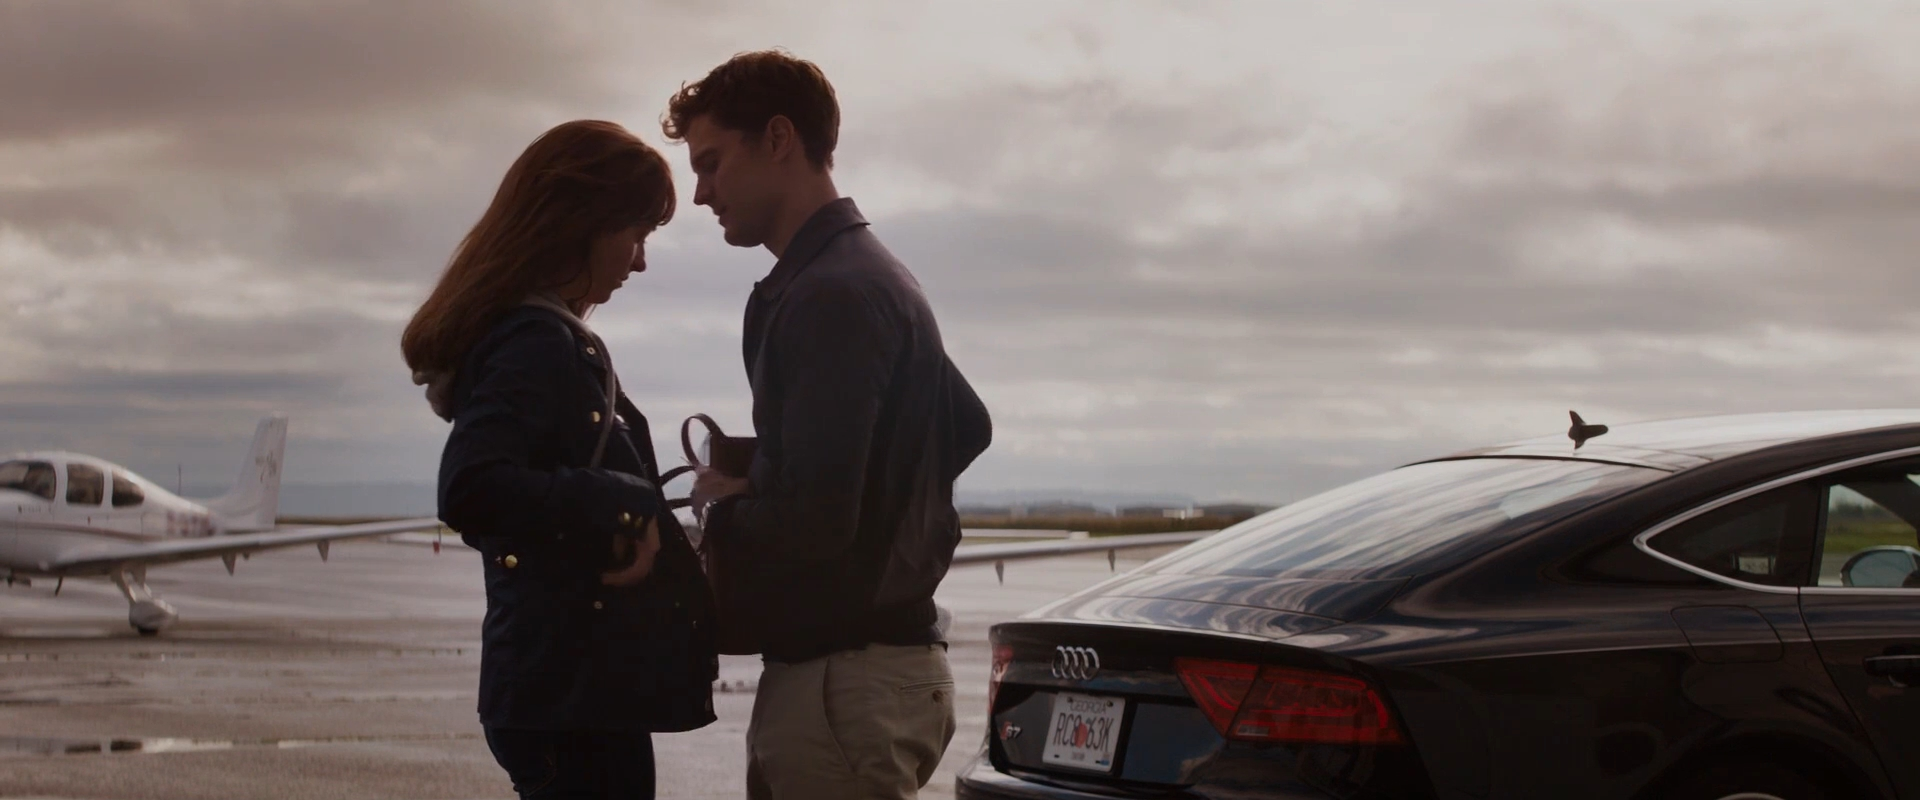 FIFTY SHADES OF GREY Or Love Means Never Having To Sign